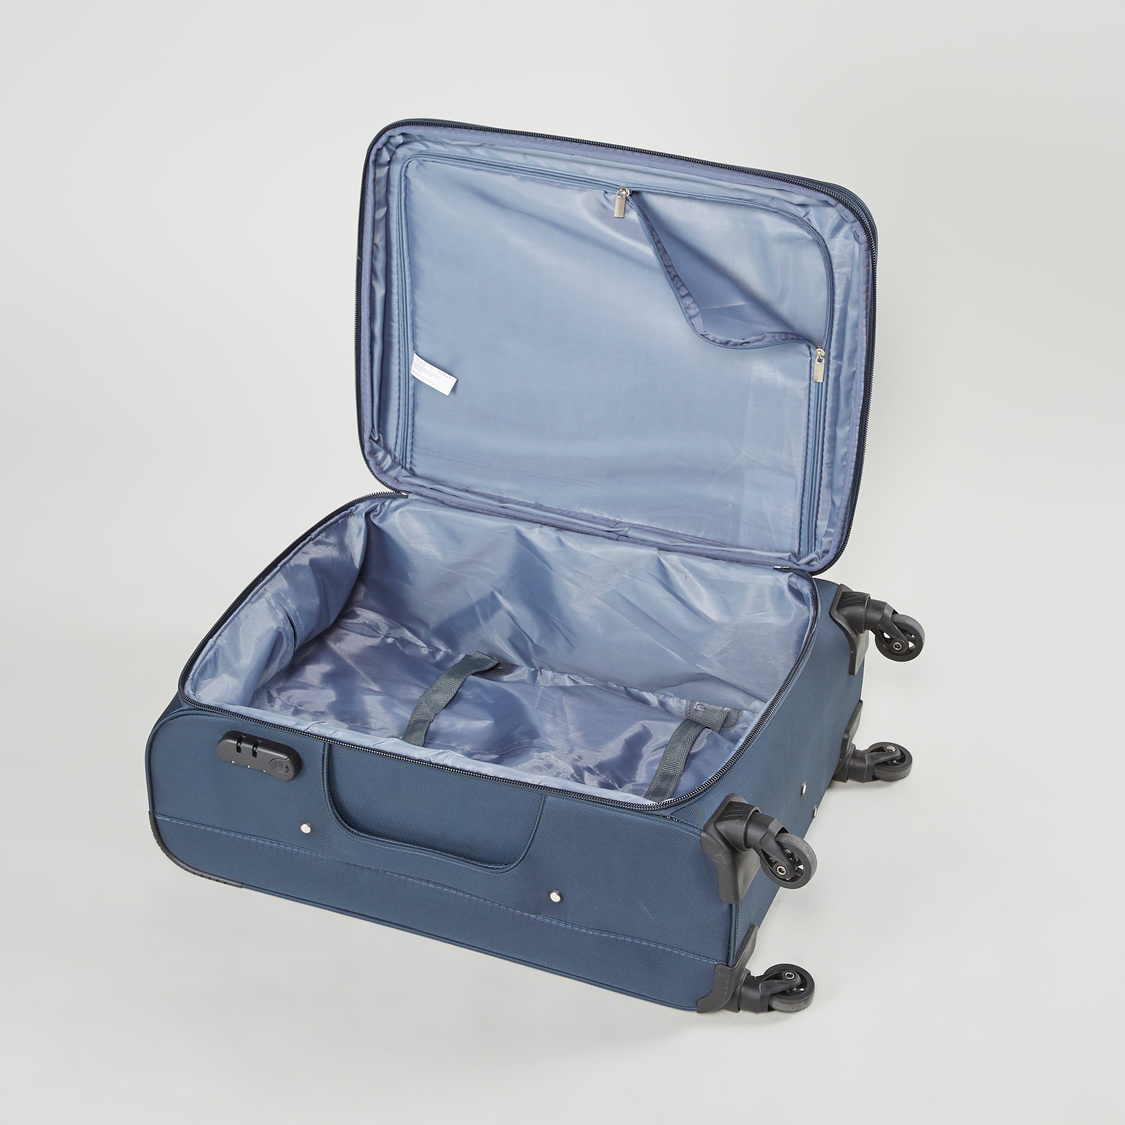 Travel Soft Case with Retractable Handle - 41x27x58 cms